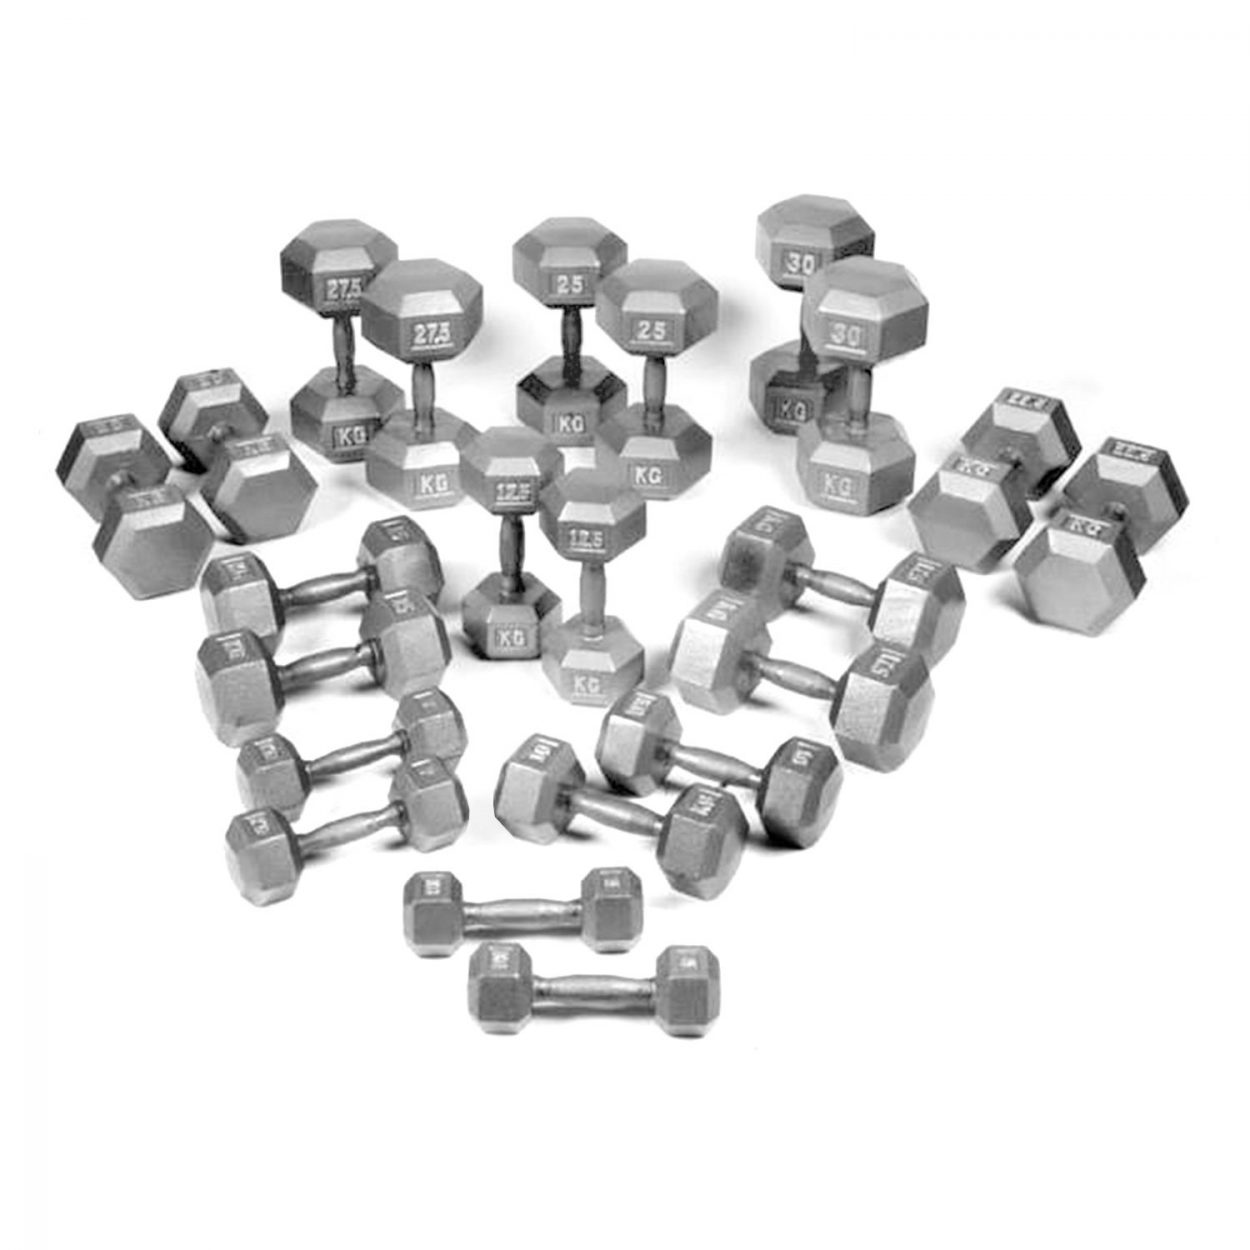 Hex Dumbbell Set by Body Power 5 – 30Kg (11 Pairs)